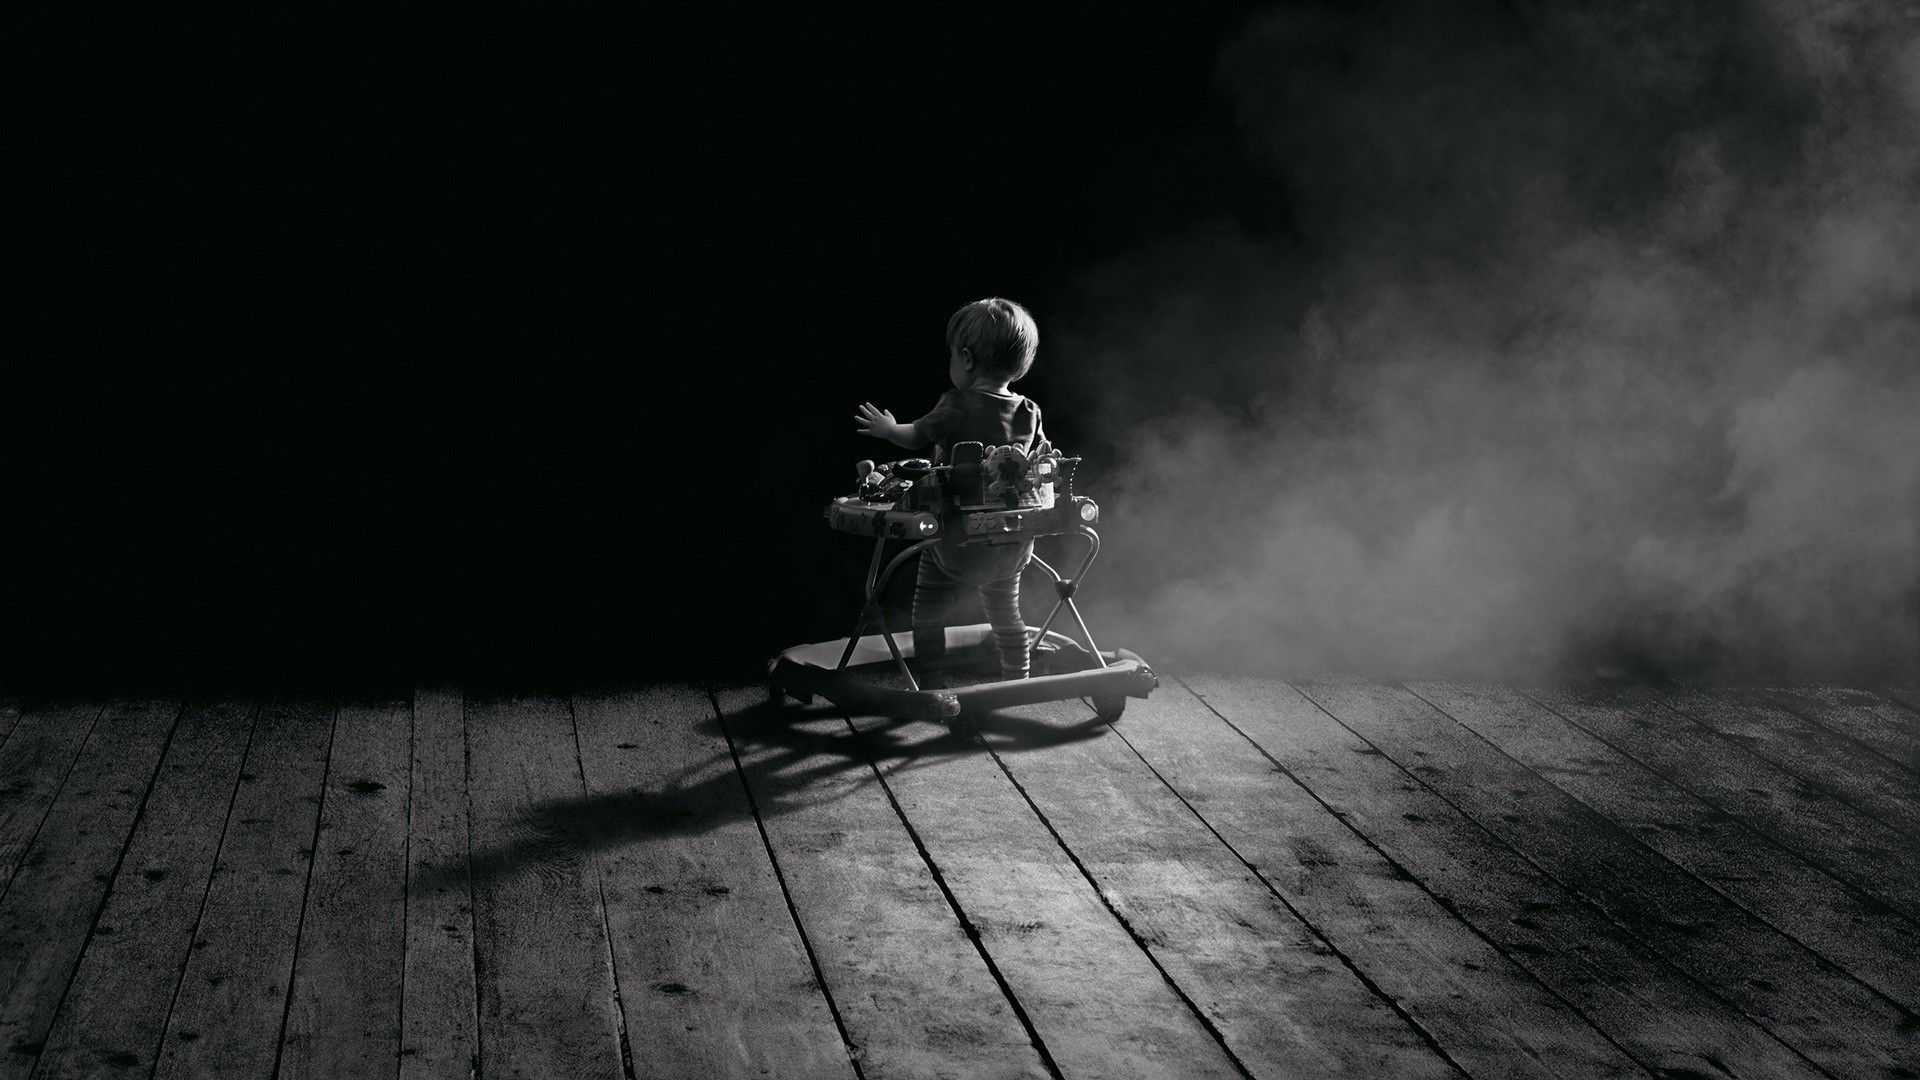 Scary Hd Wallpapers Horror Wallpapers For Desktop Scary Wallpapers Horror  Wallpapers For Desktop Wallpapers)